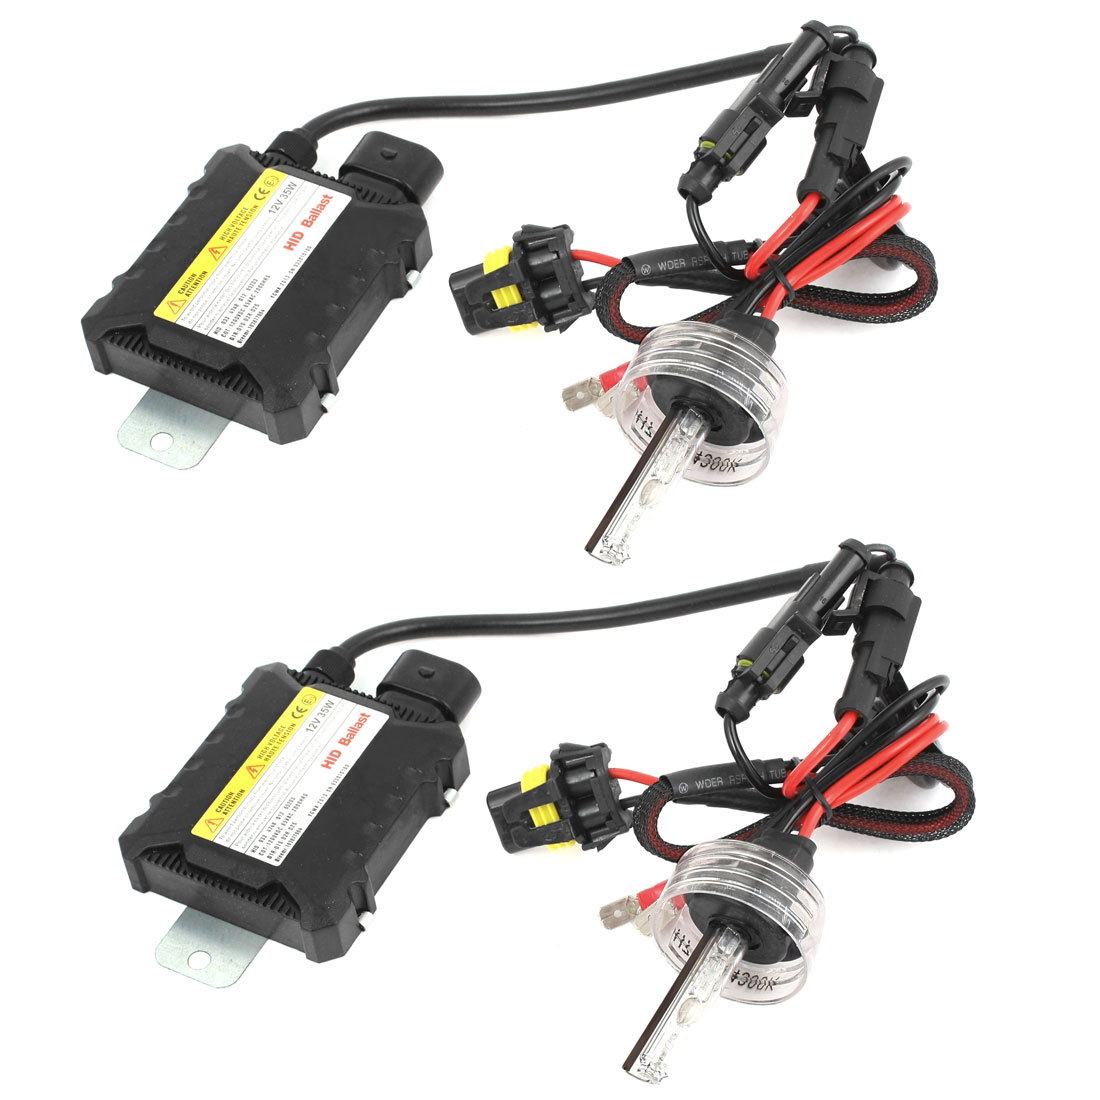 2 Pcs Car HID Xenon Headlight H7 4300K 12V 35W Bulbs White w Ballast